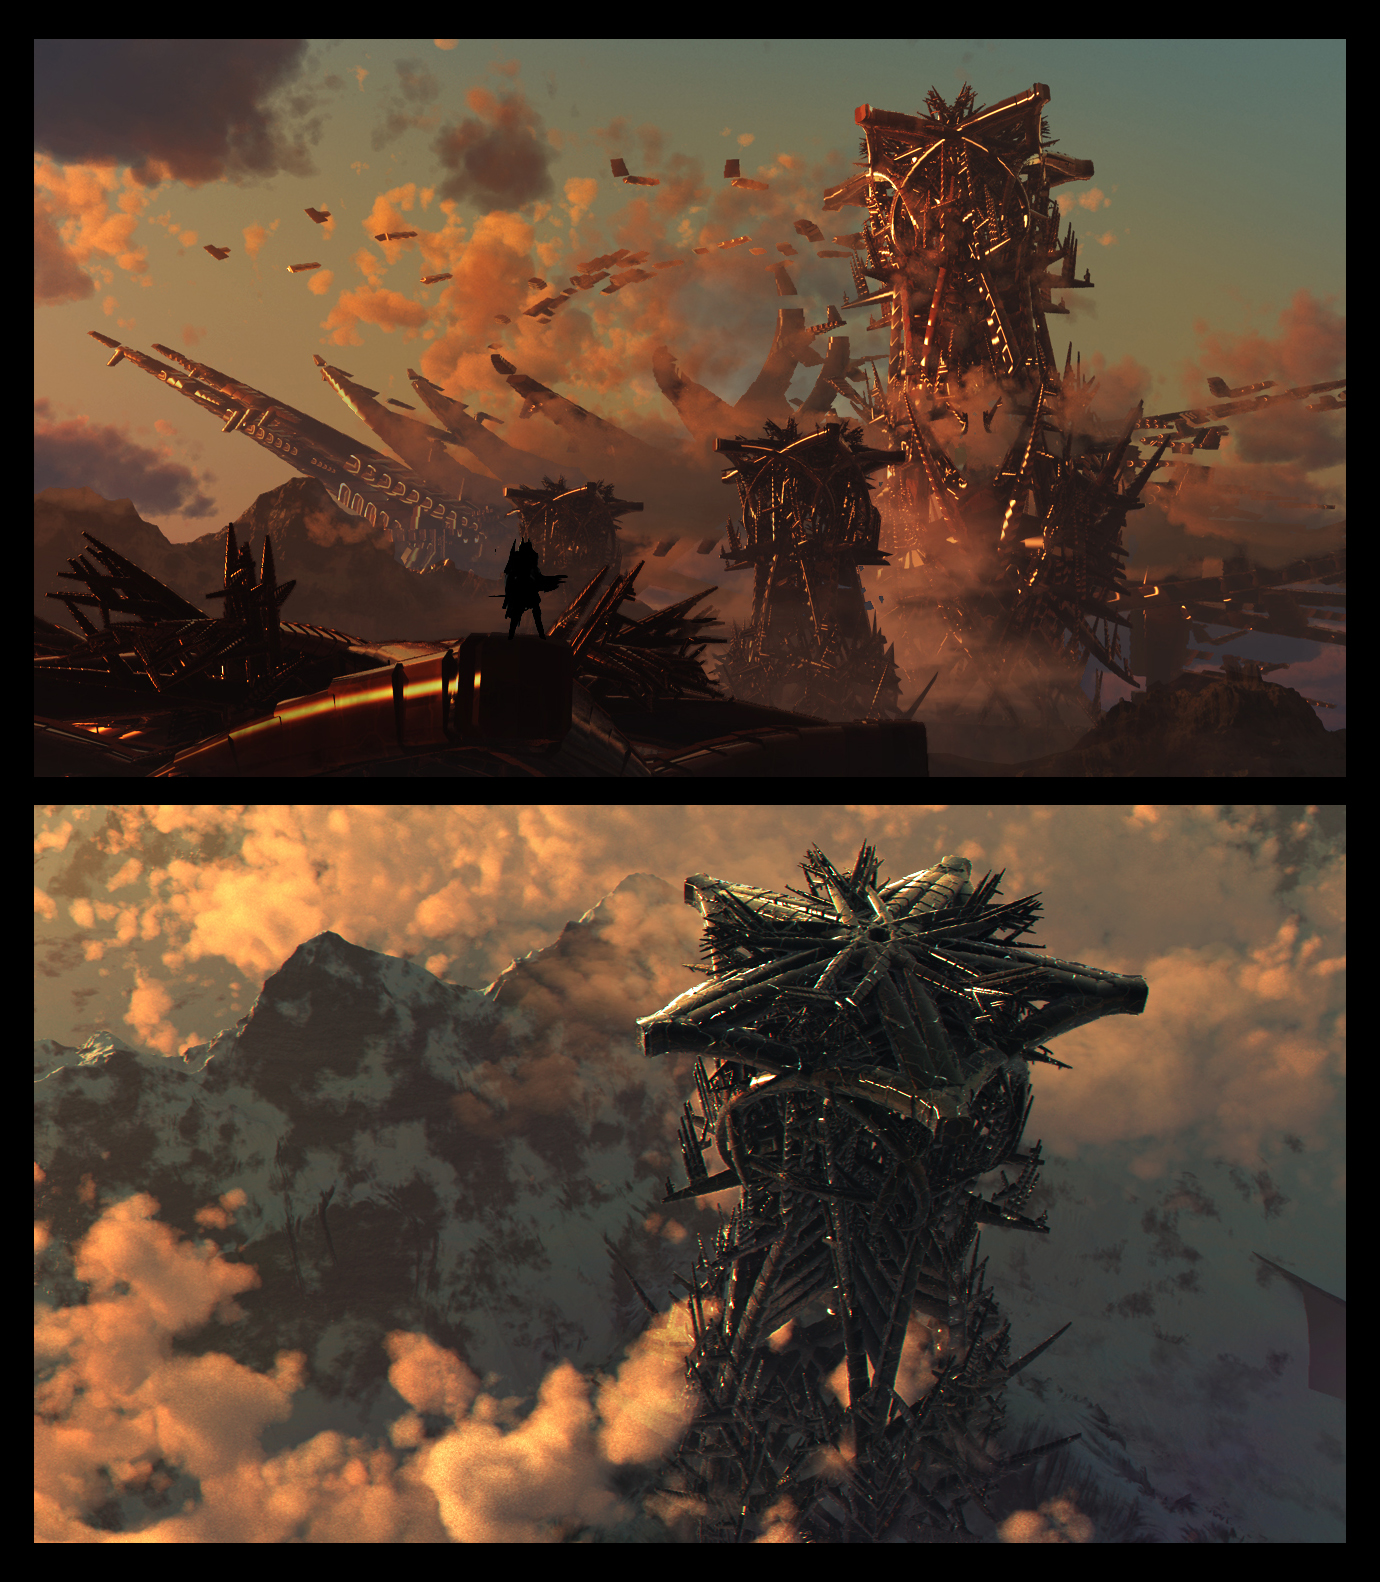 Red Tower Ruins by fmacmanus